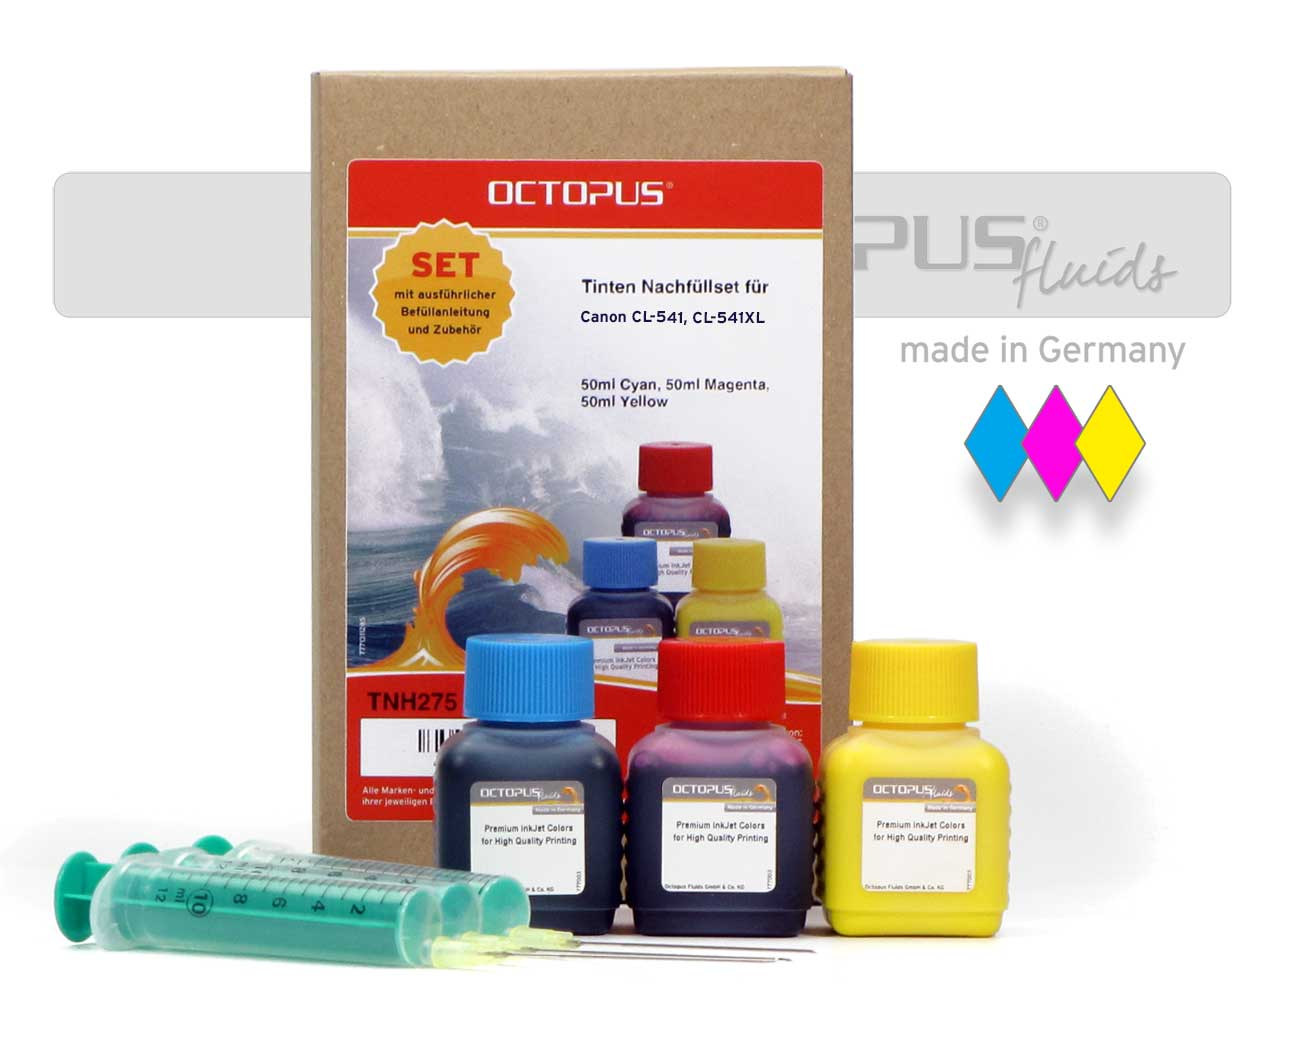 Ink Refill Kit for Canon CL-541, CL-541XL color